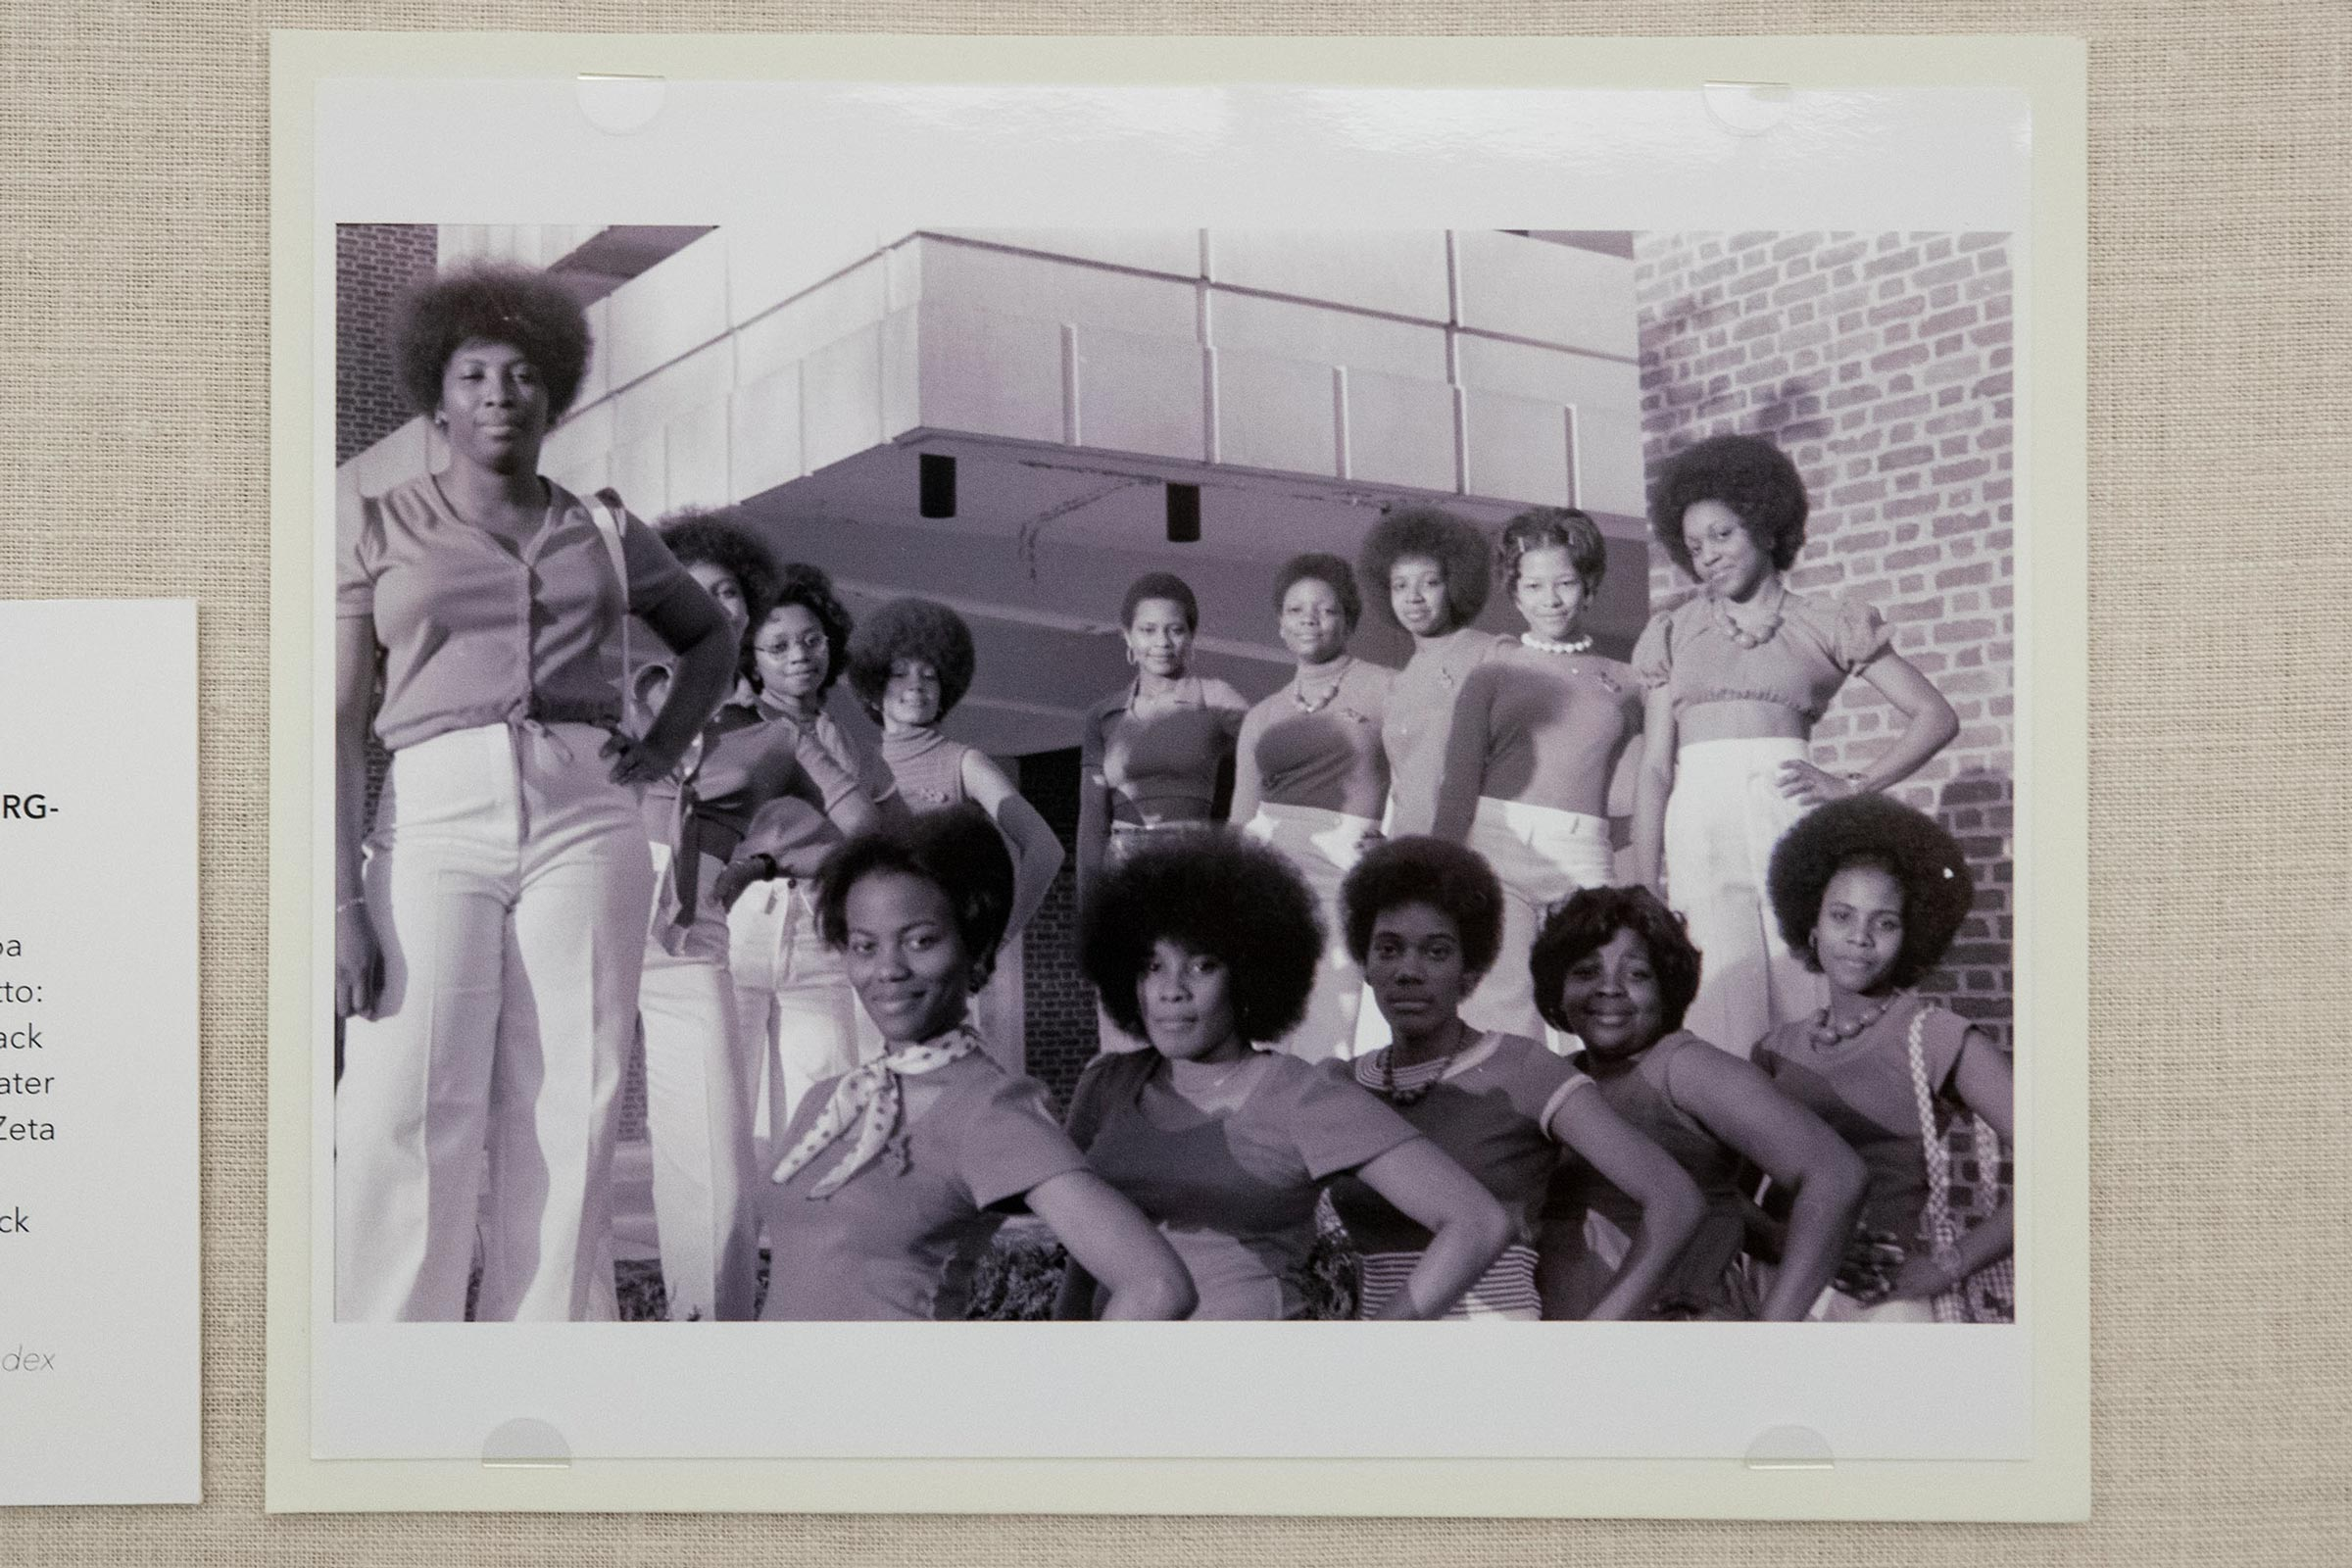 The first black sorority at UVA was the Kappa Rho chapter of Delta Sigma Theta, chartered in 1973.